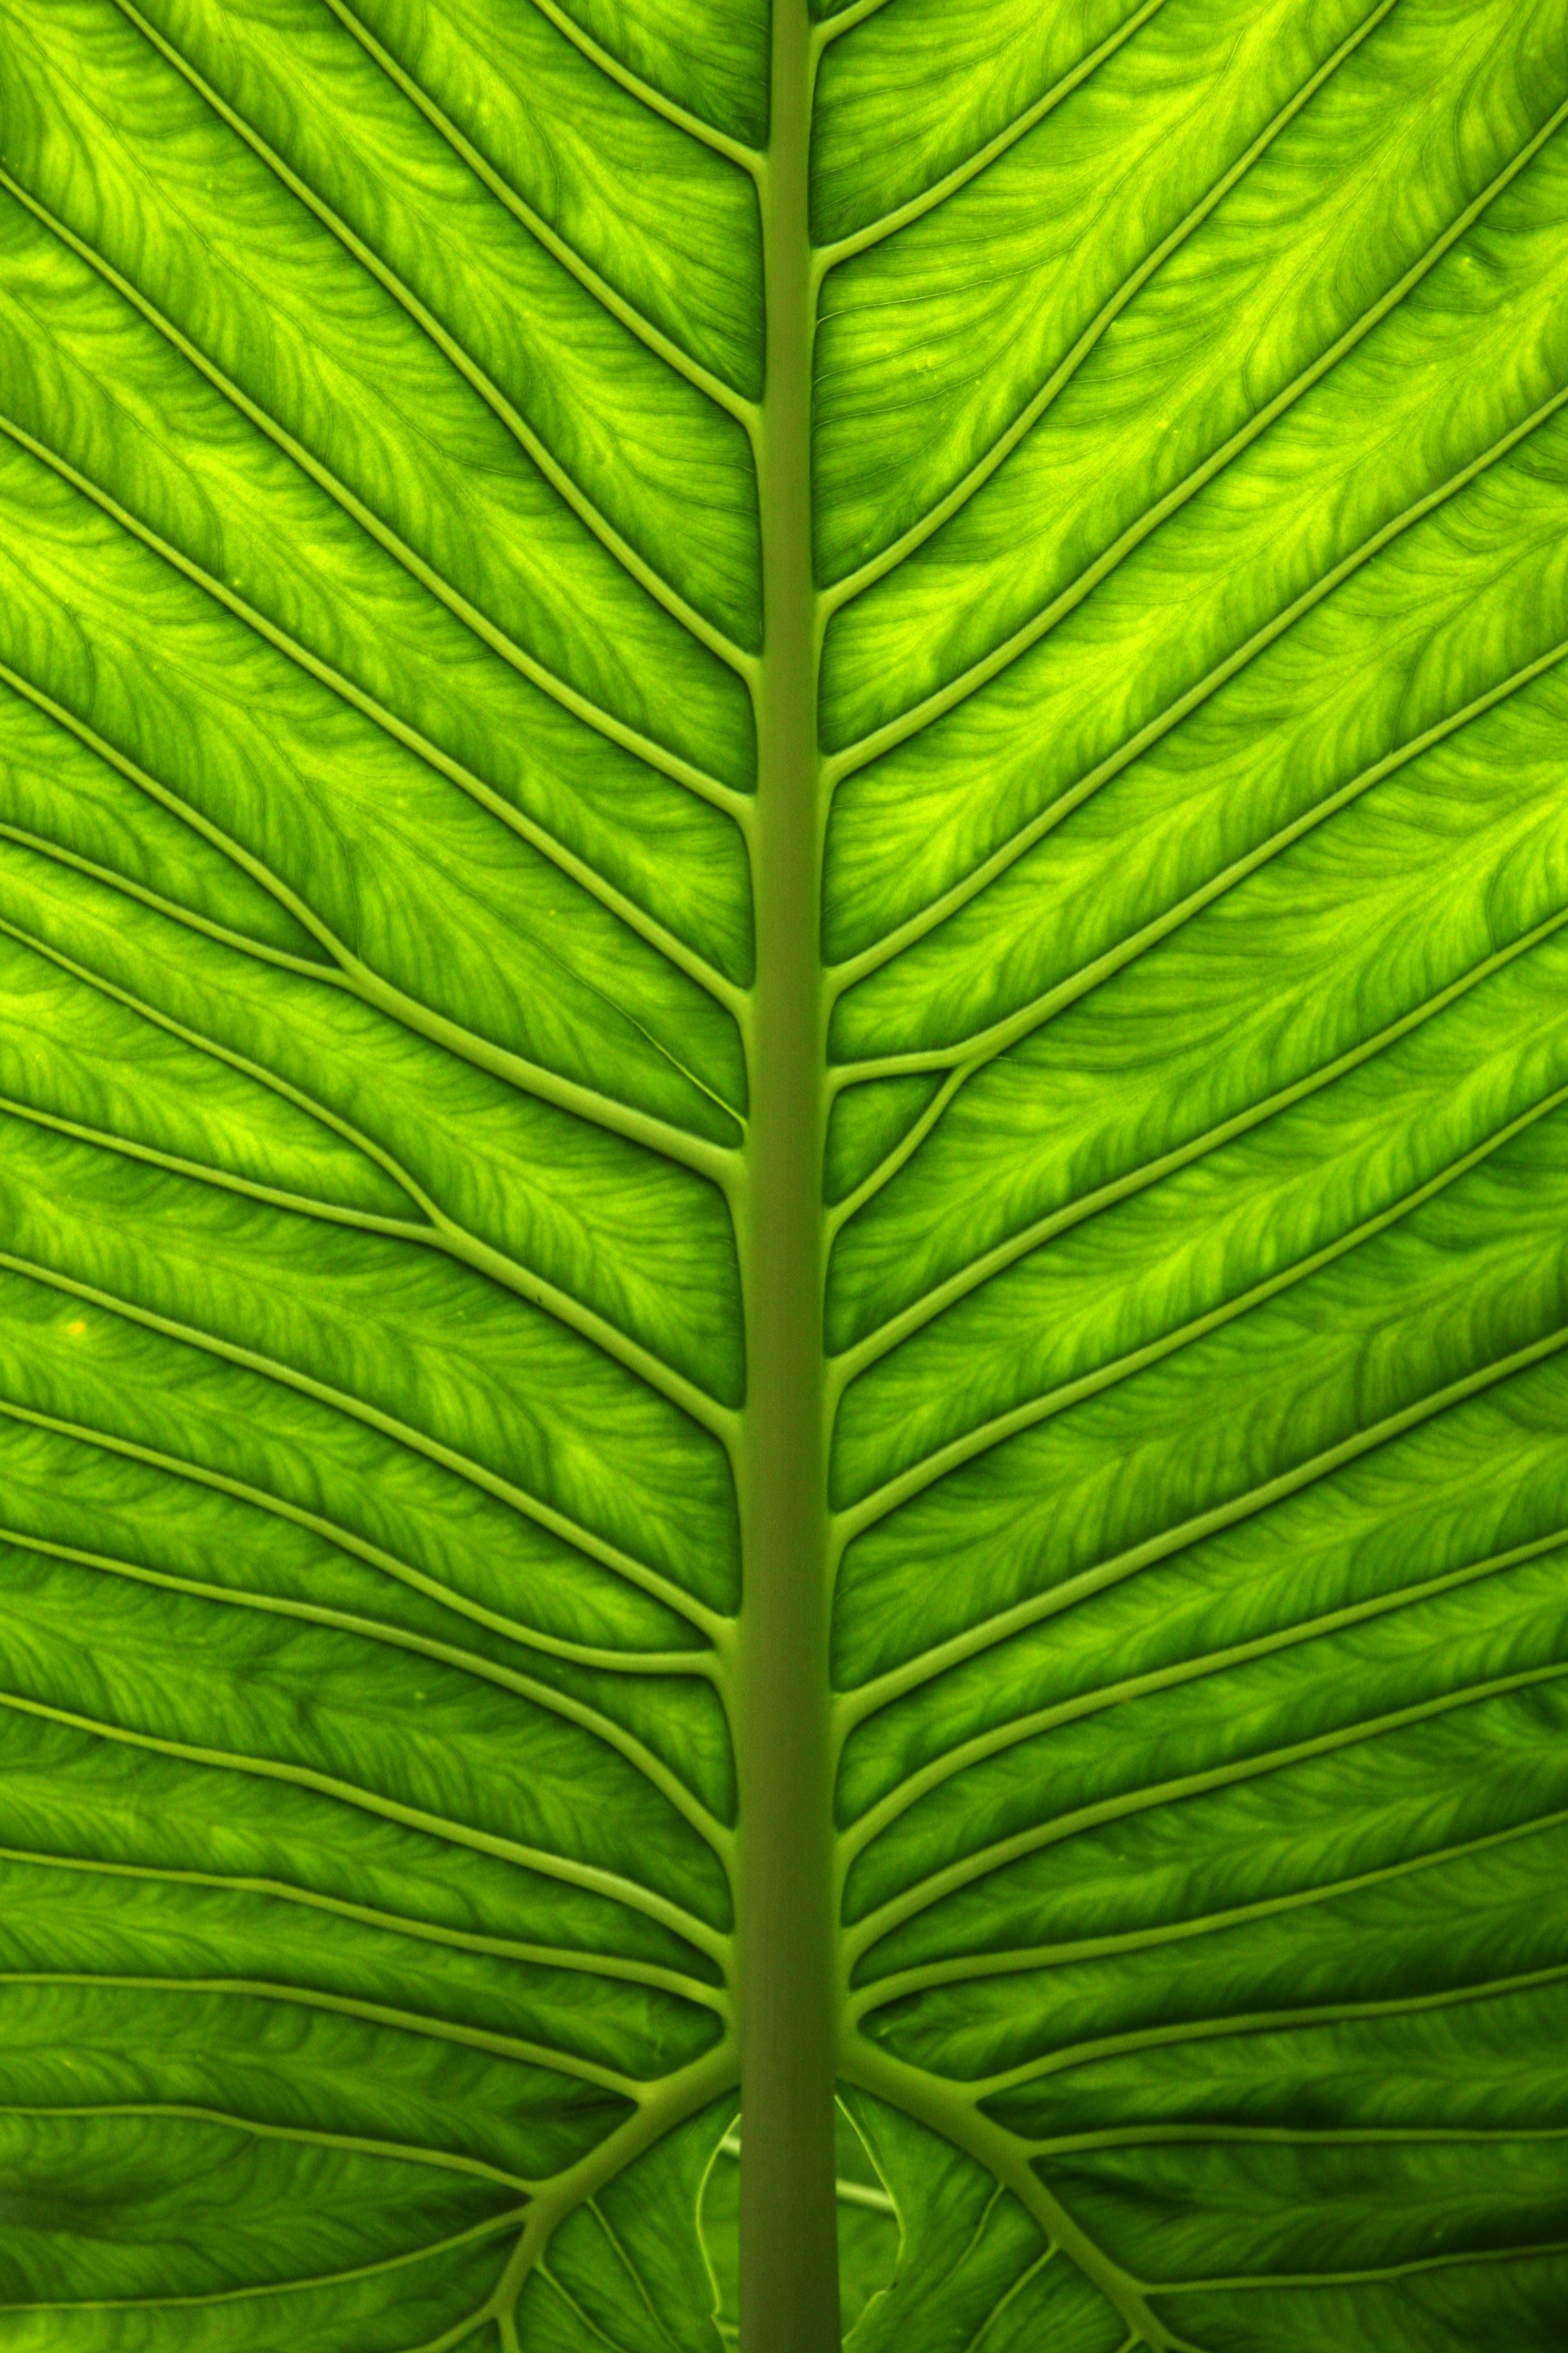 A Beautiful Close Up Of A Green Leaf  Photo One